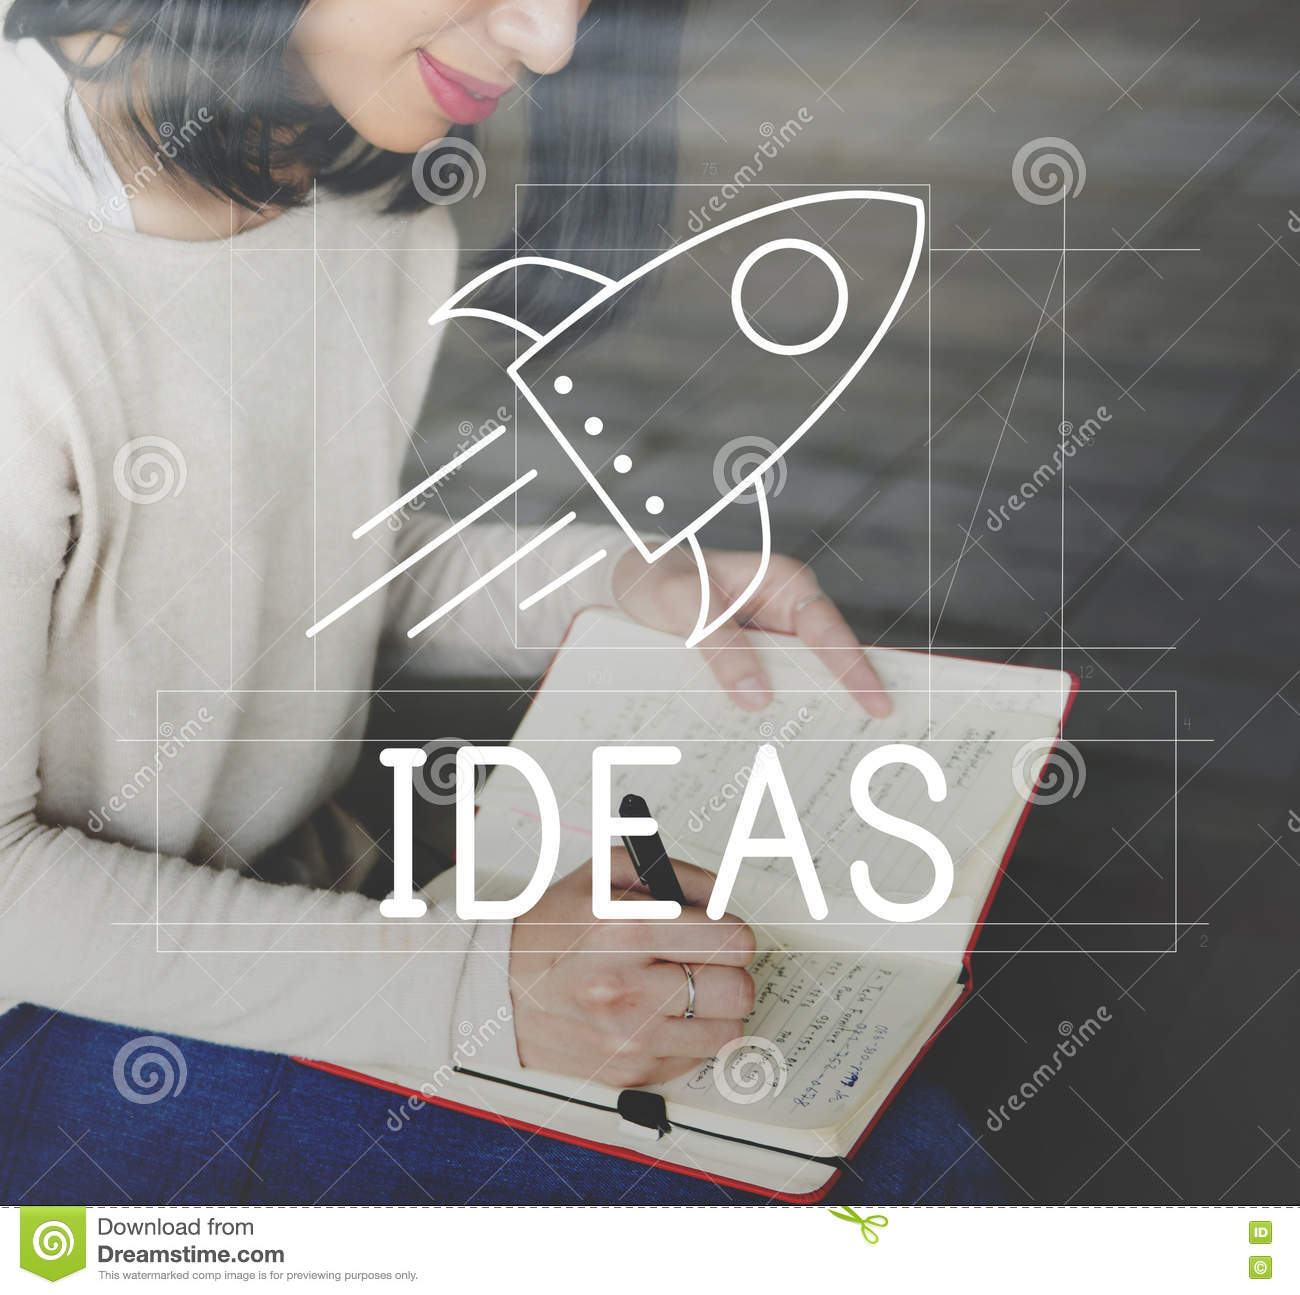 Goals Ideas Mission Spaceship Concept Stock Image Image Of